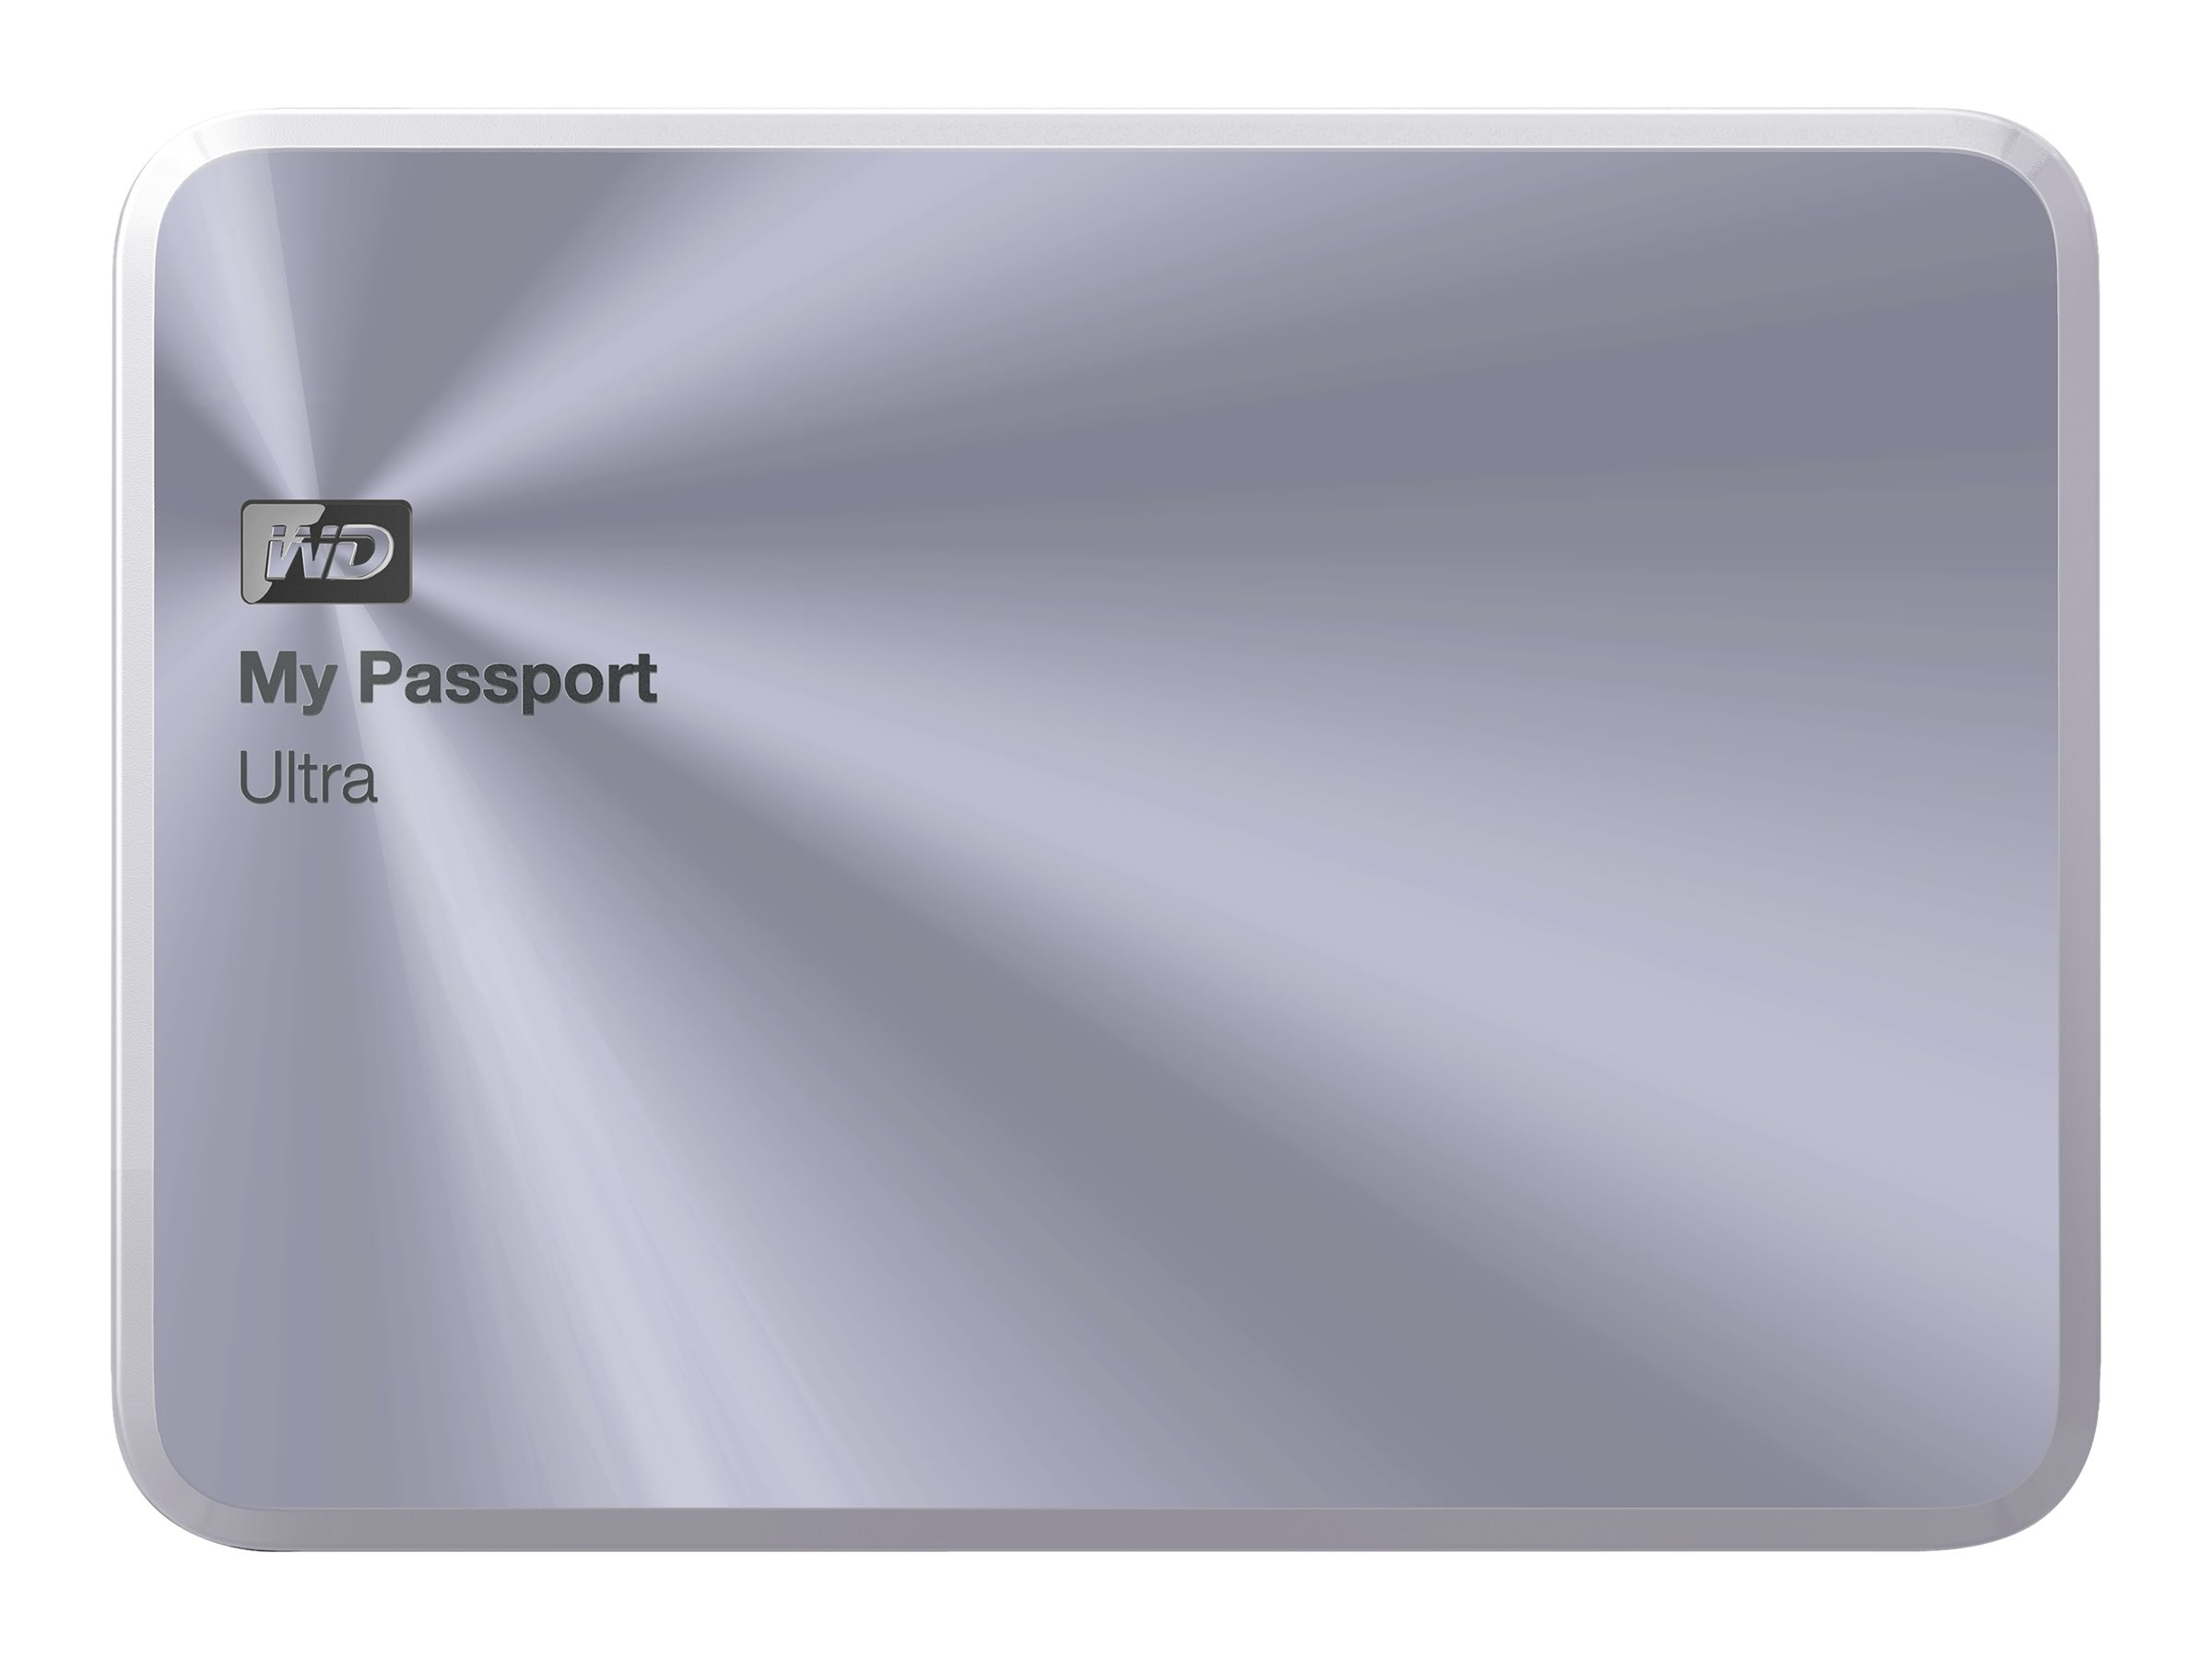 WD 1TB My Passport Ultra Metal Edition USB 3.0 Portable Hard Drive - Silver, WDBTYH0010BSL-NESN